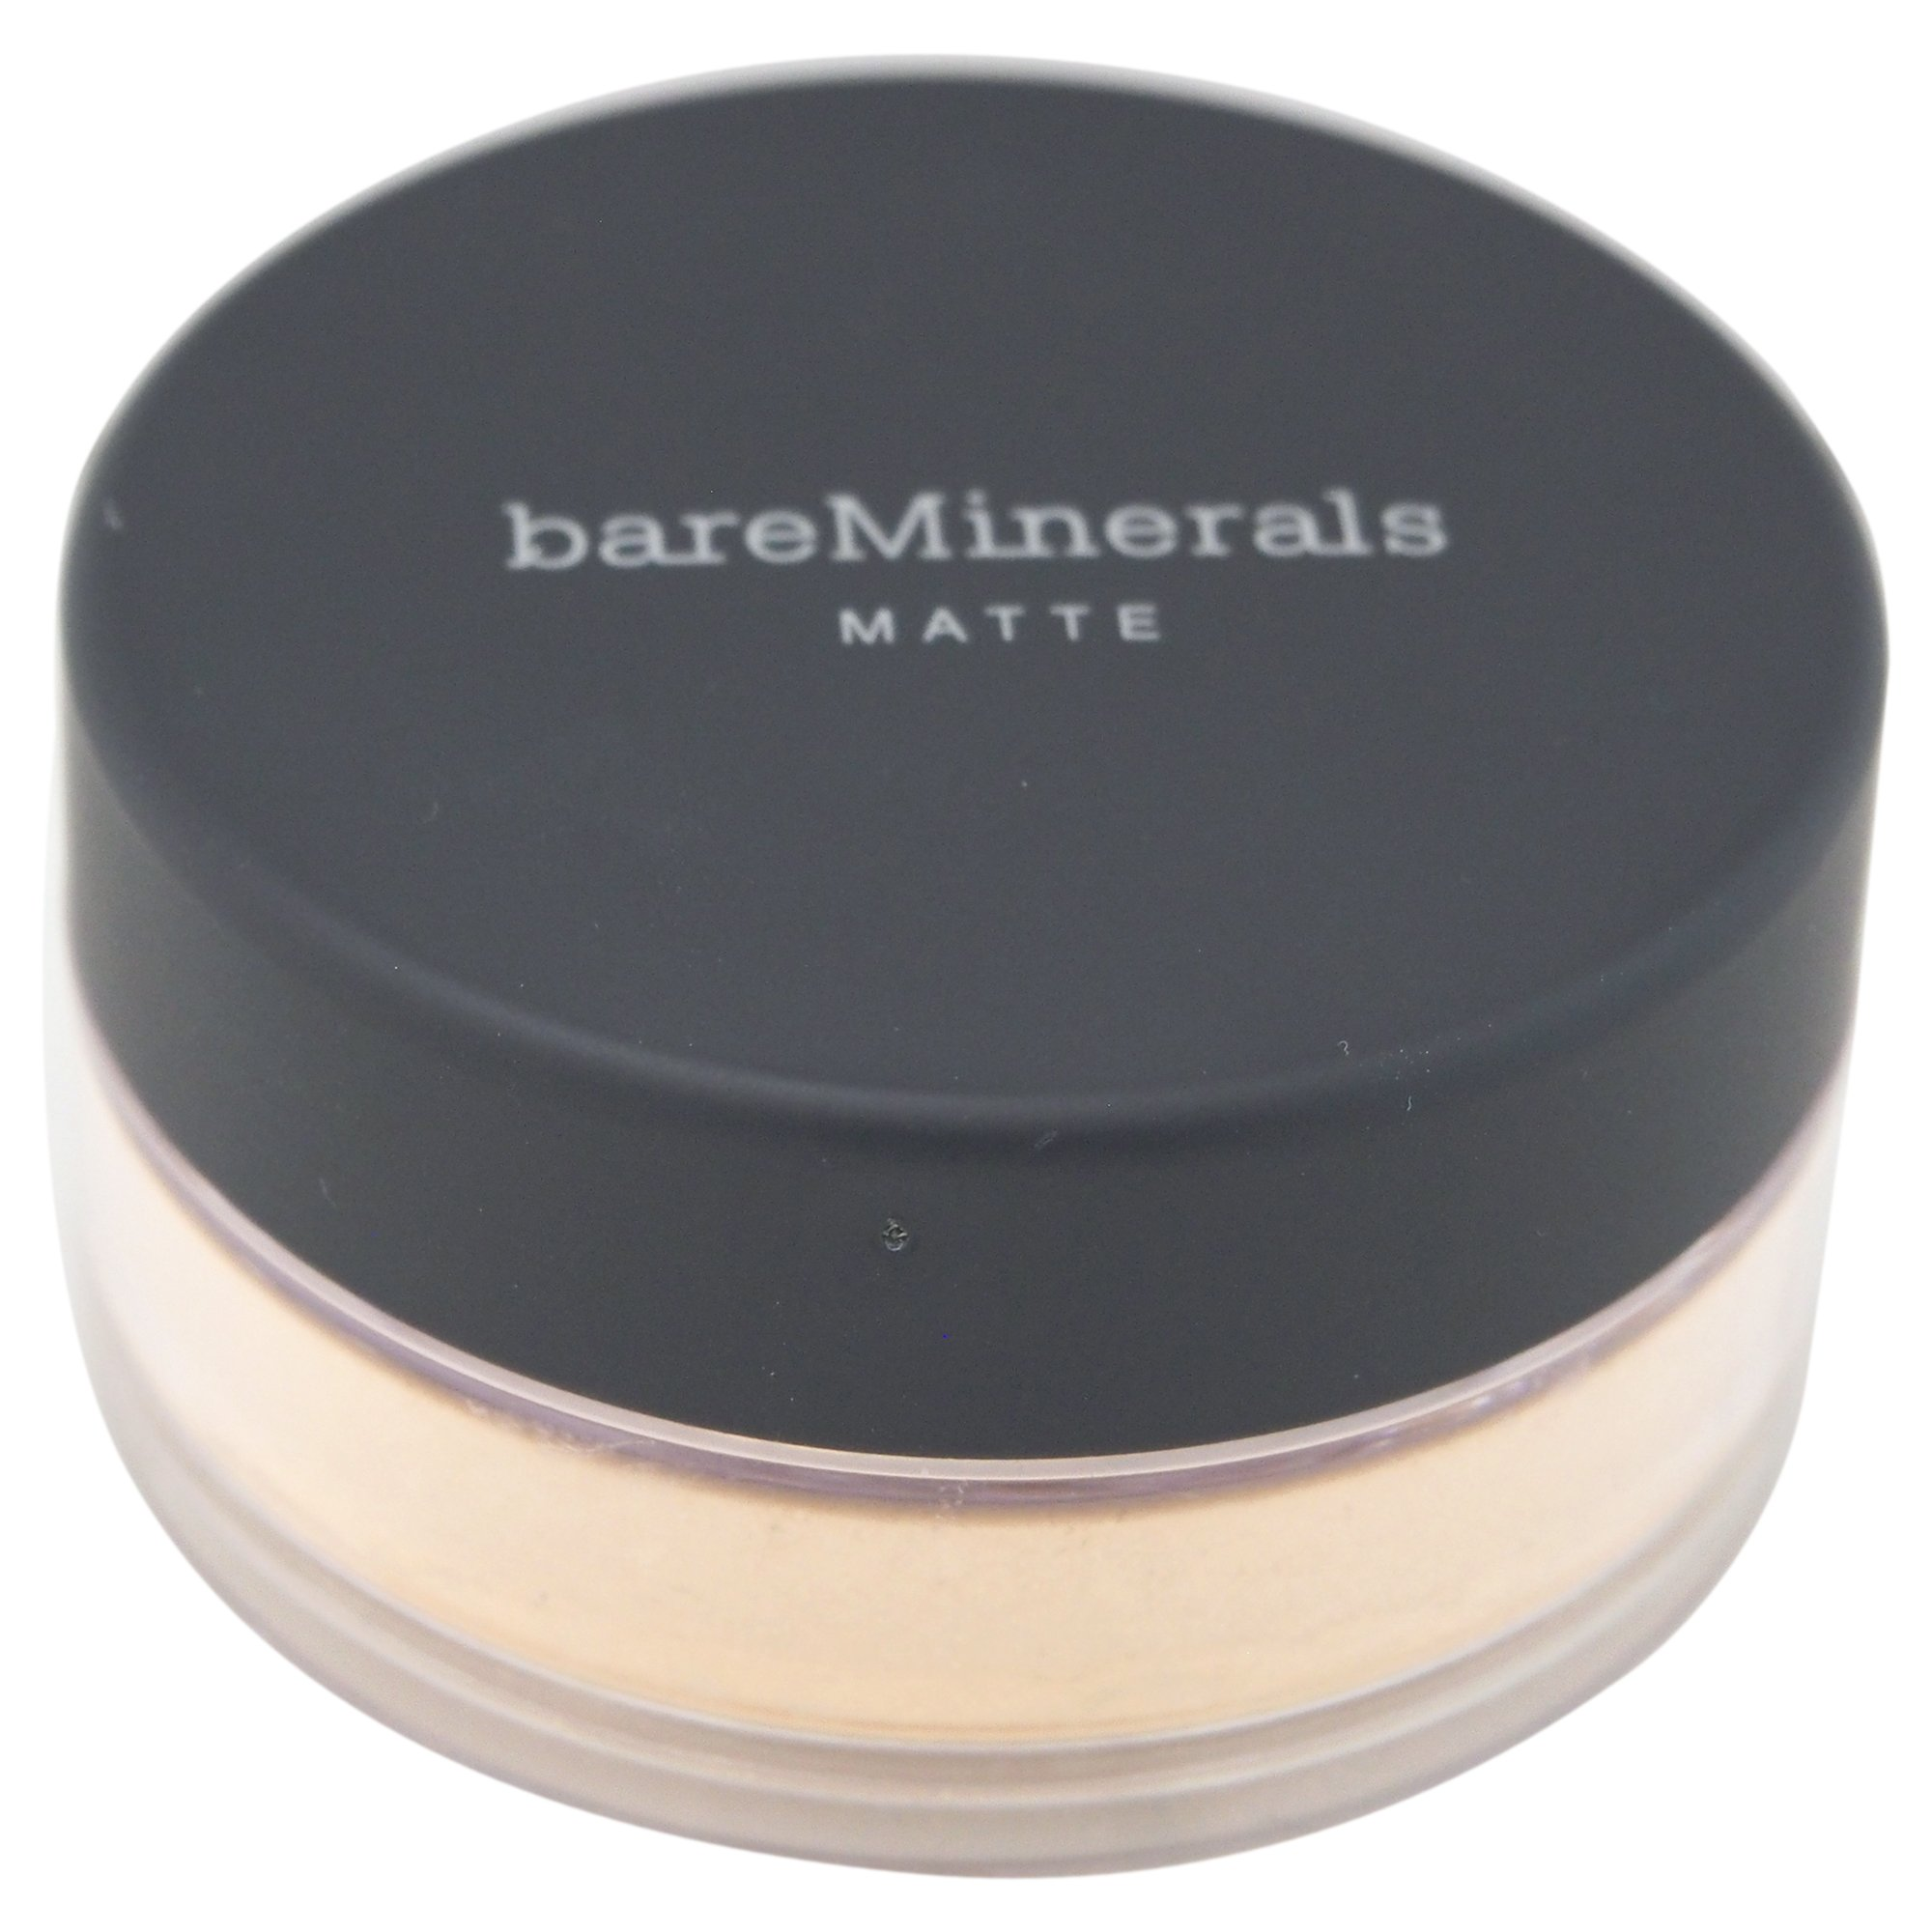 bareMinerals Broad Spectrum SPF 15 Matte Foundation, Fairly Light, 0.21 Ounce